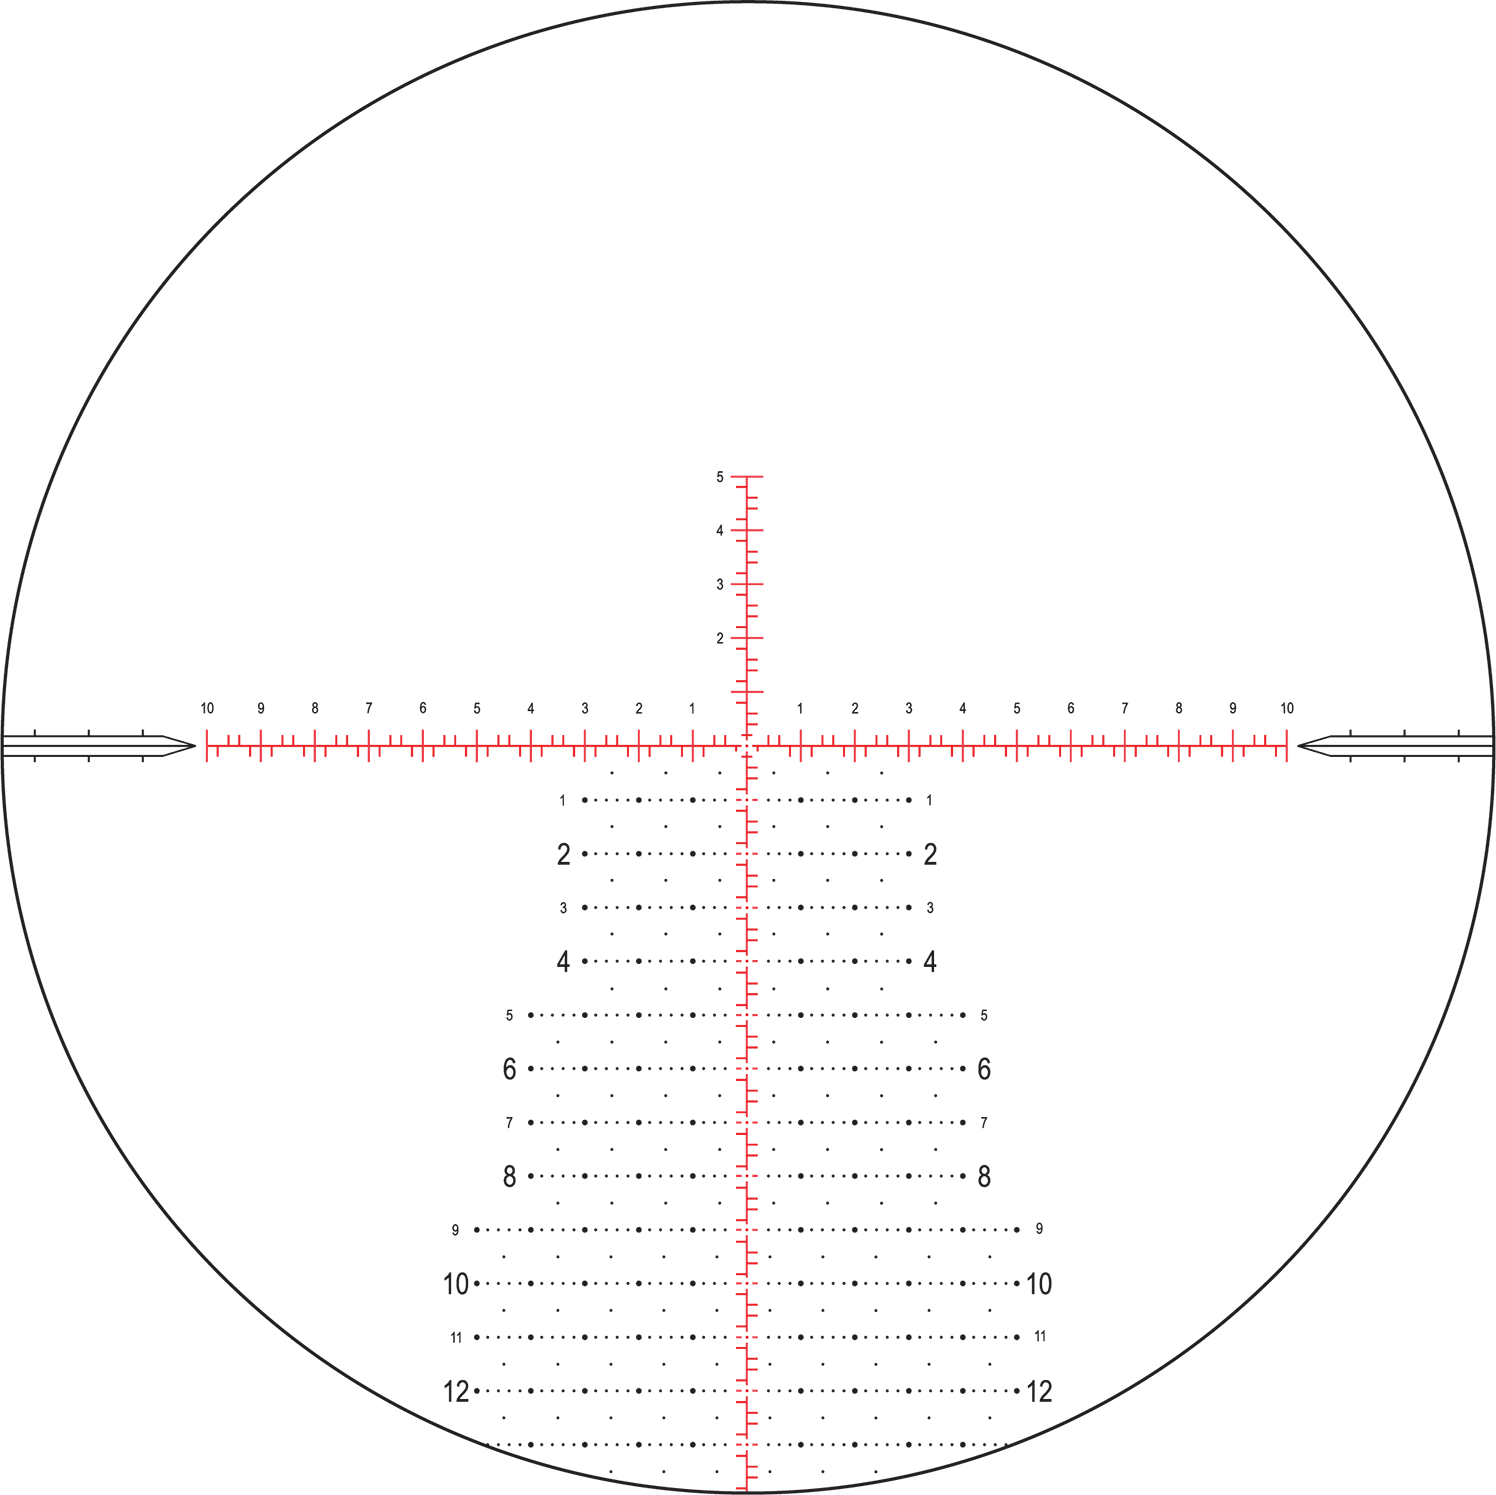 Reticle_Images - Mil-XT_Zoom